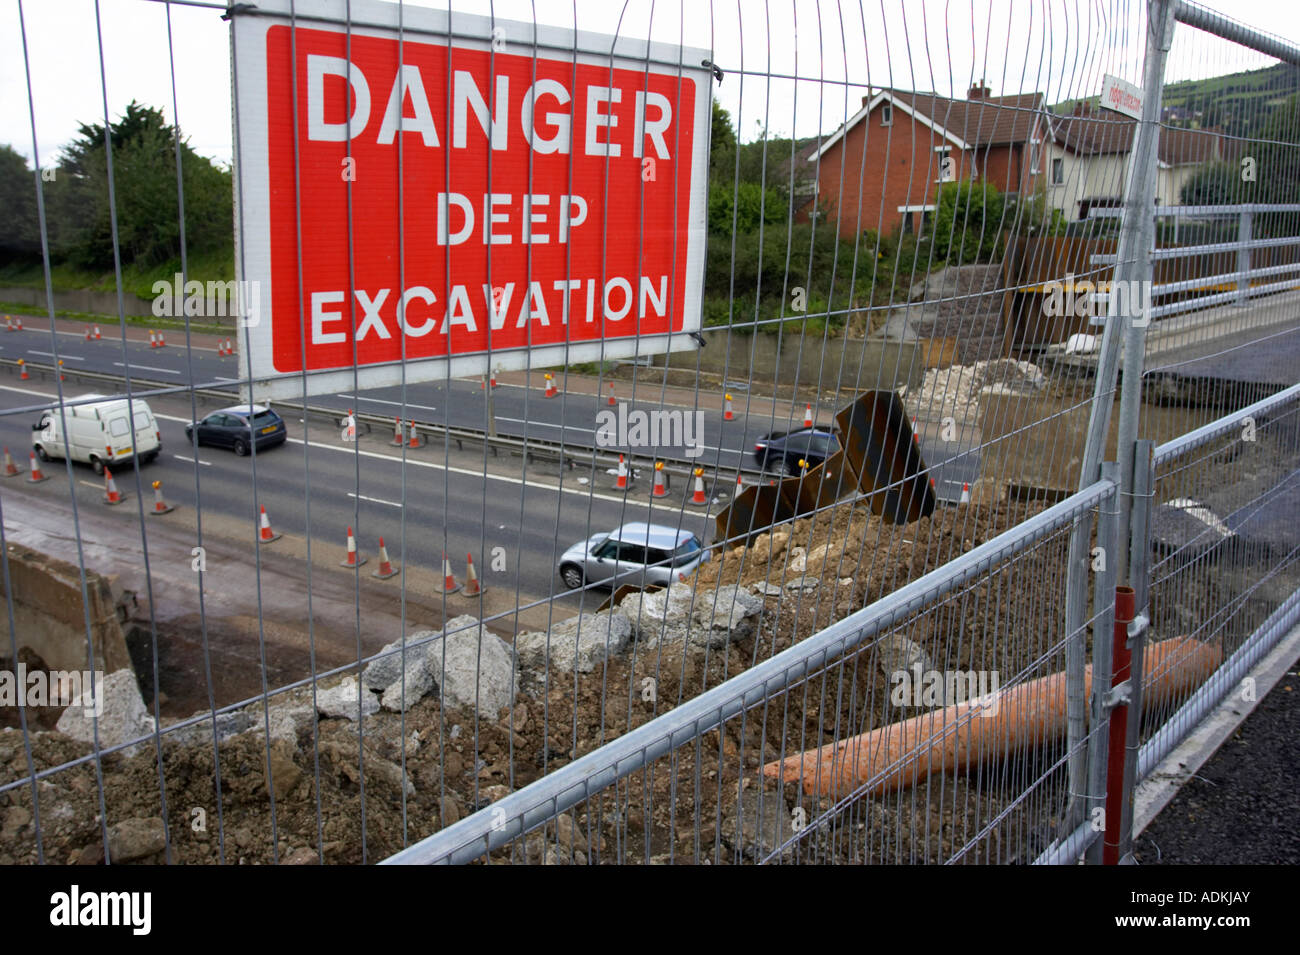 Danger Deep Excavation Sign Attached To Metal Fence Surrounding Stock Photo Alamy